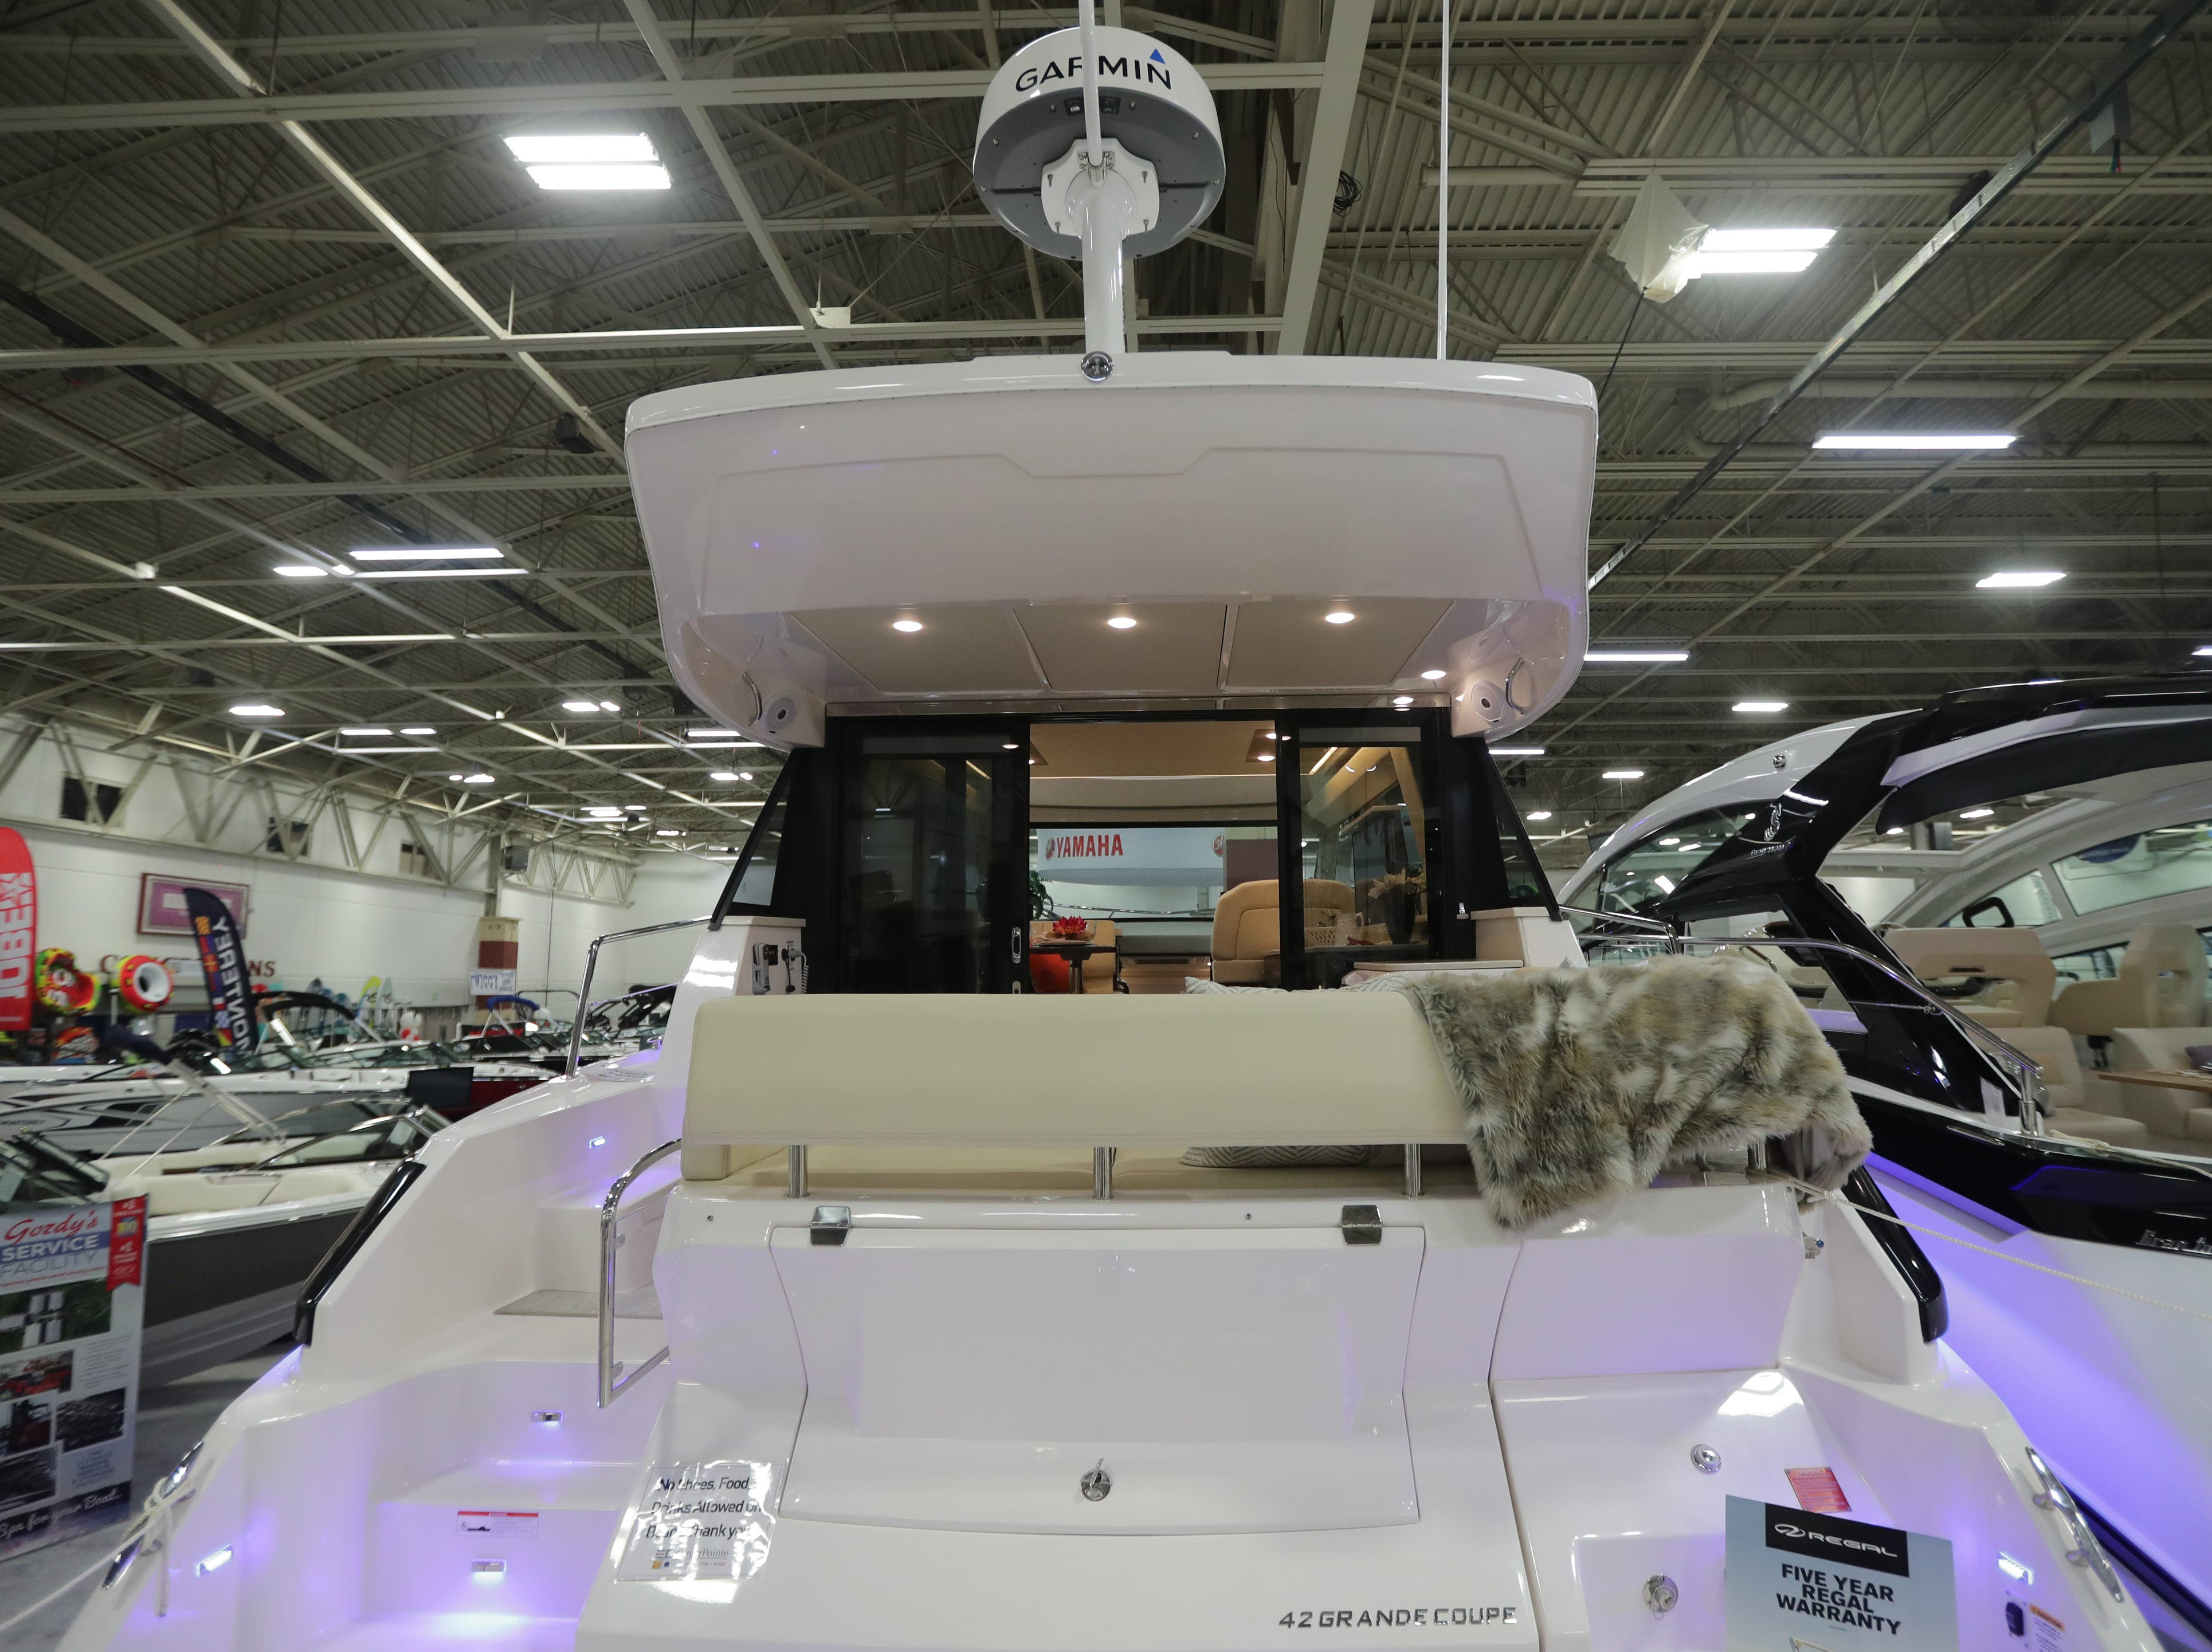 The rear area of a 42-foot Regal Grande Coupe yacht, which lists for $725,000.